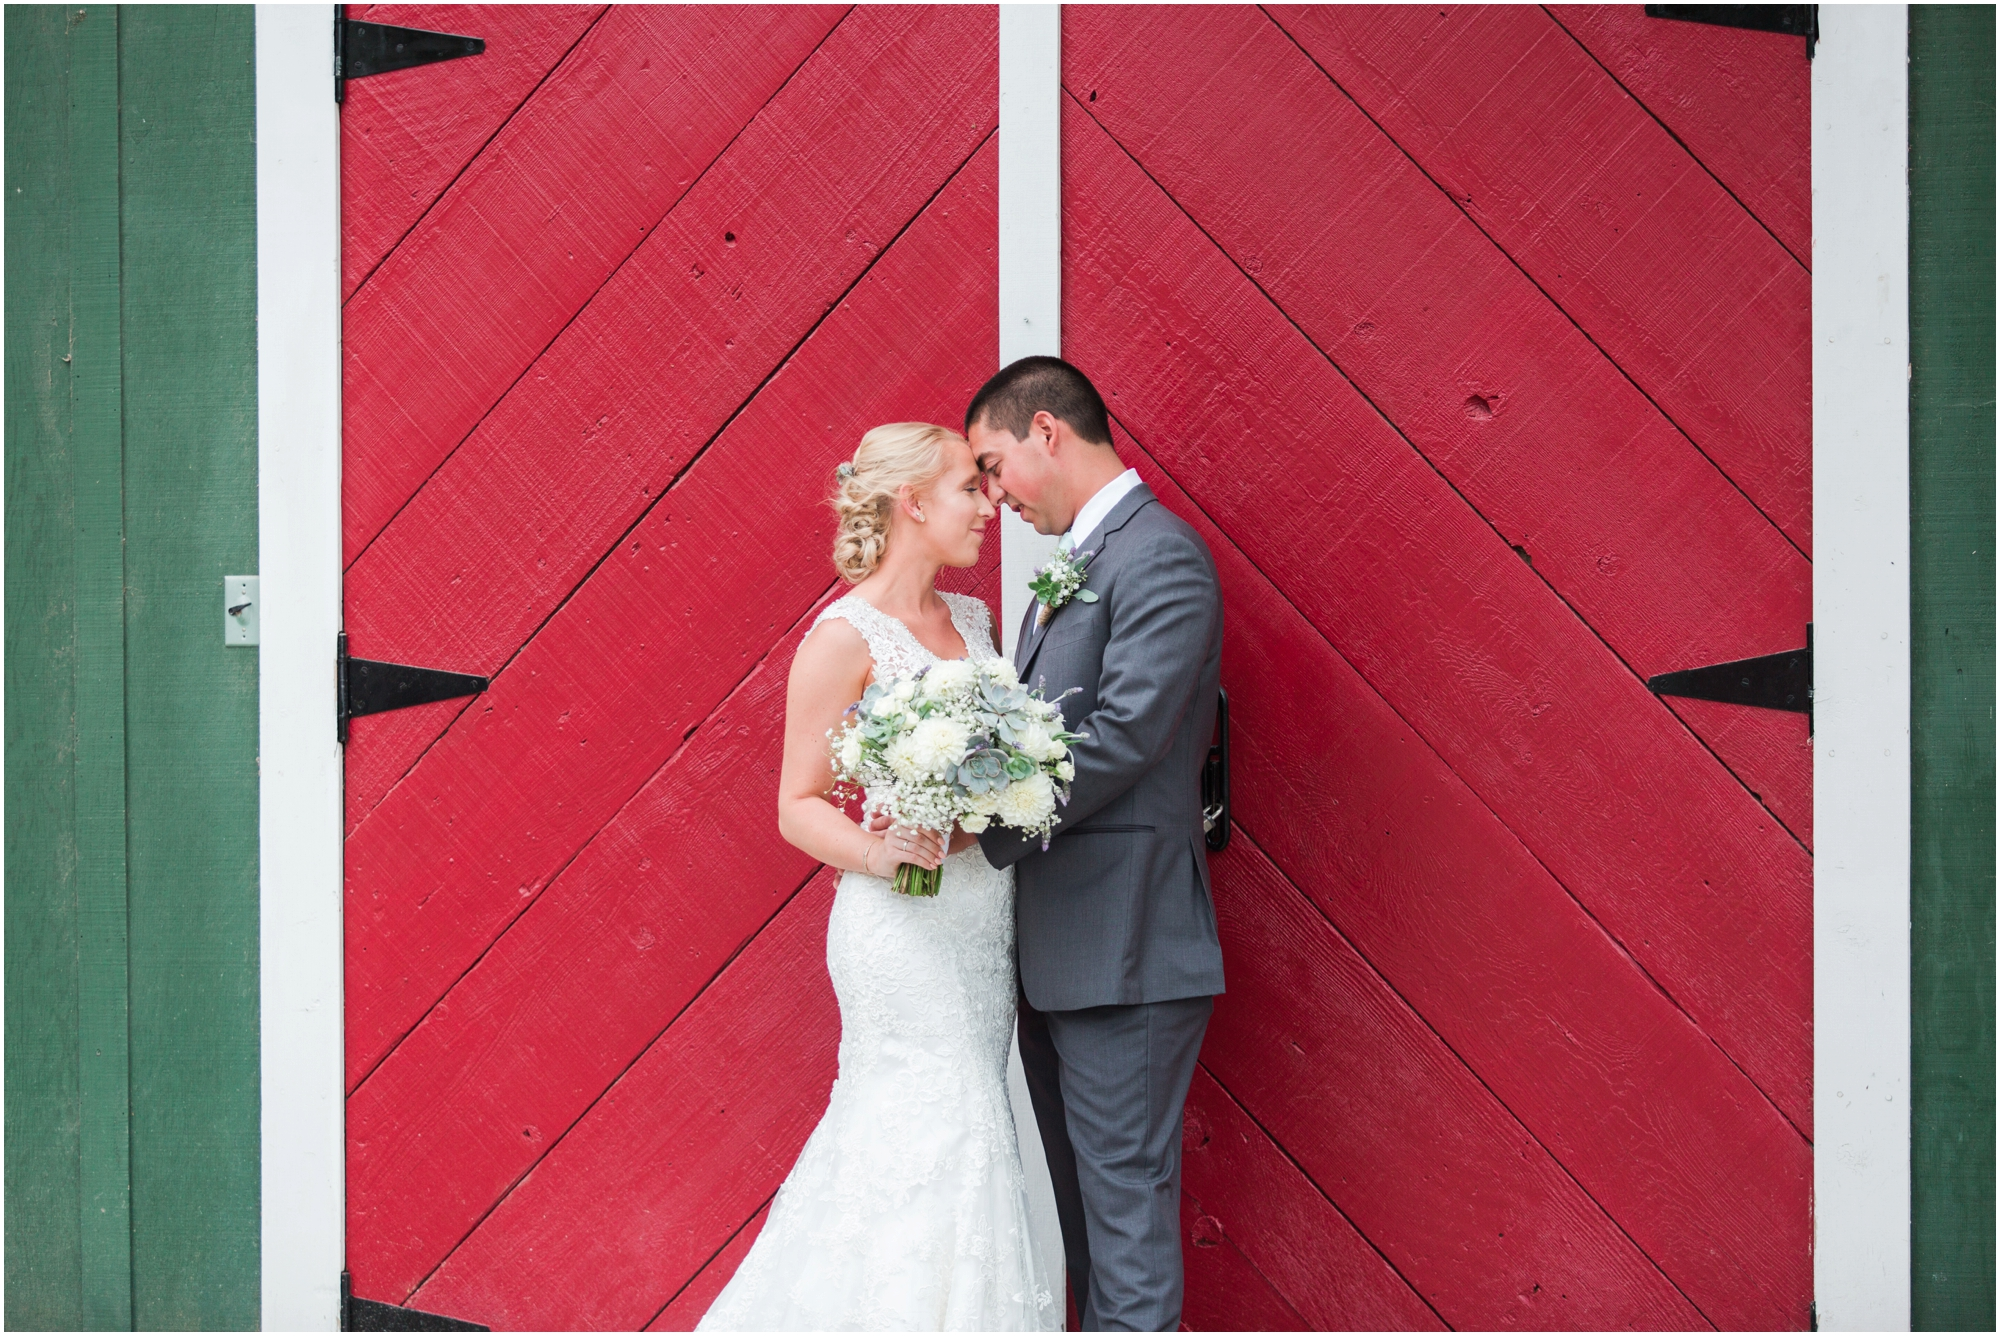 Retzlaff Winery wedding pictures by Briana Calderon Photography_2270.jpg